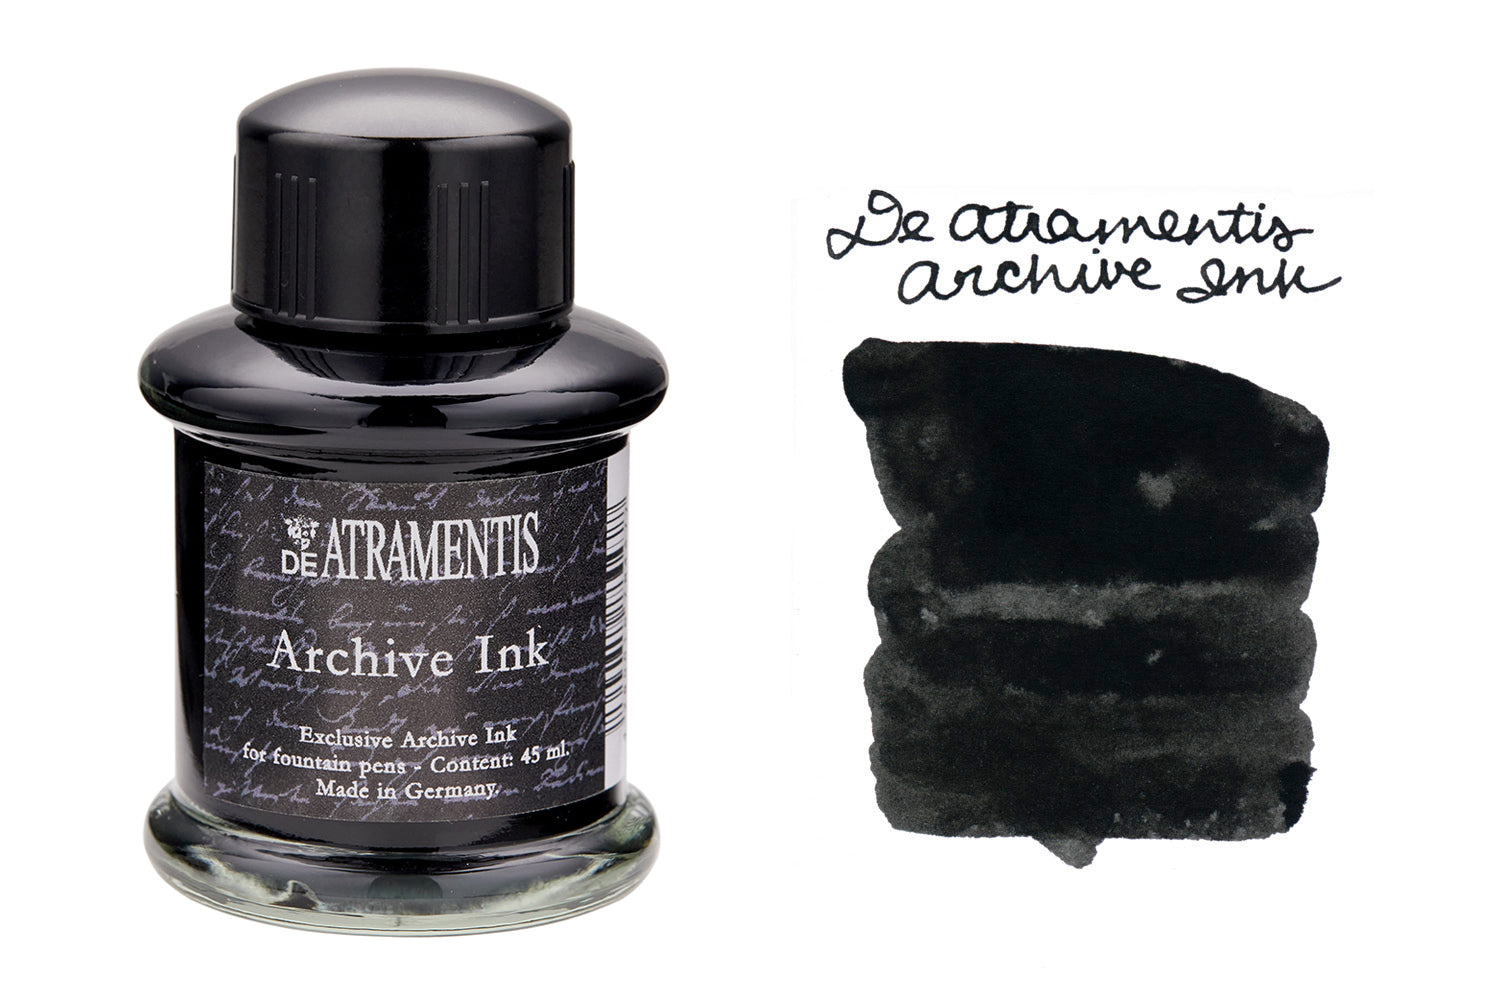 De Atramentis Archive Ink - 45ml Bottled Ink